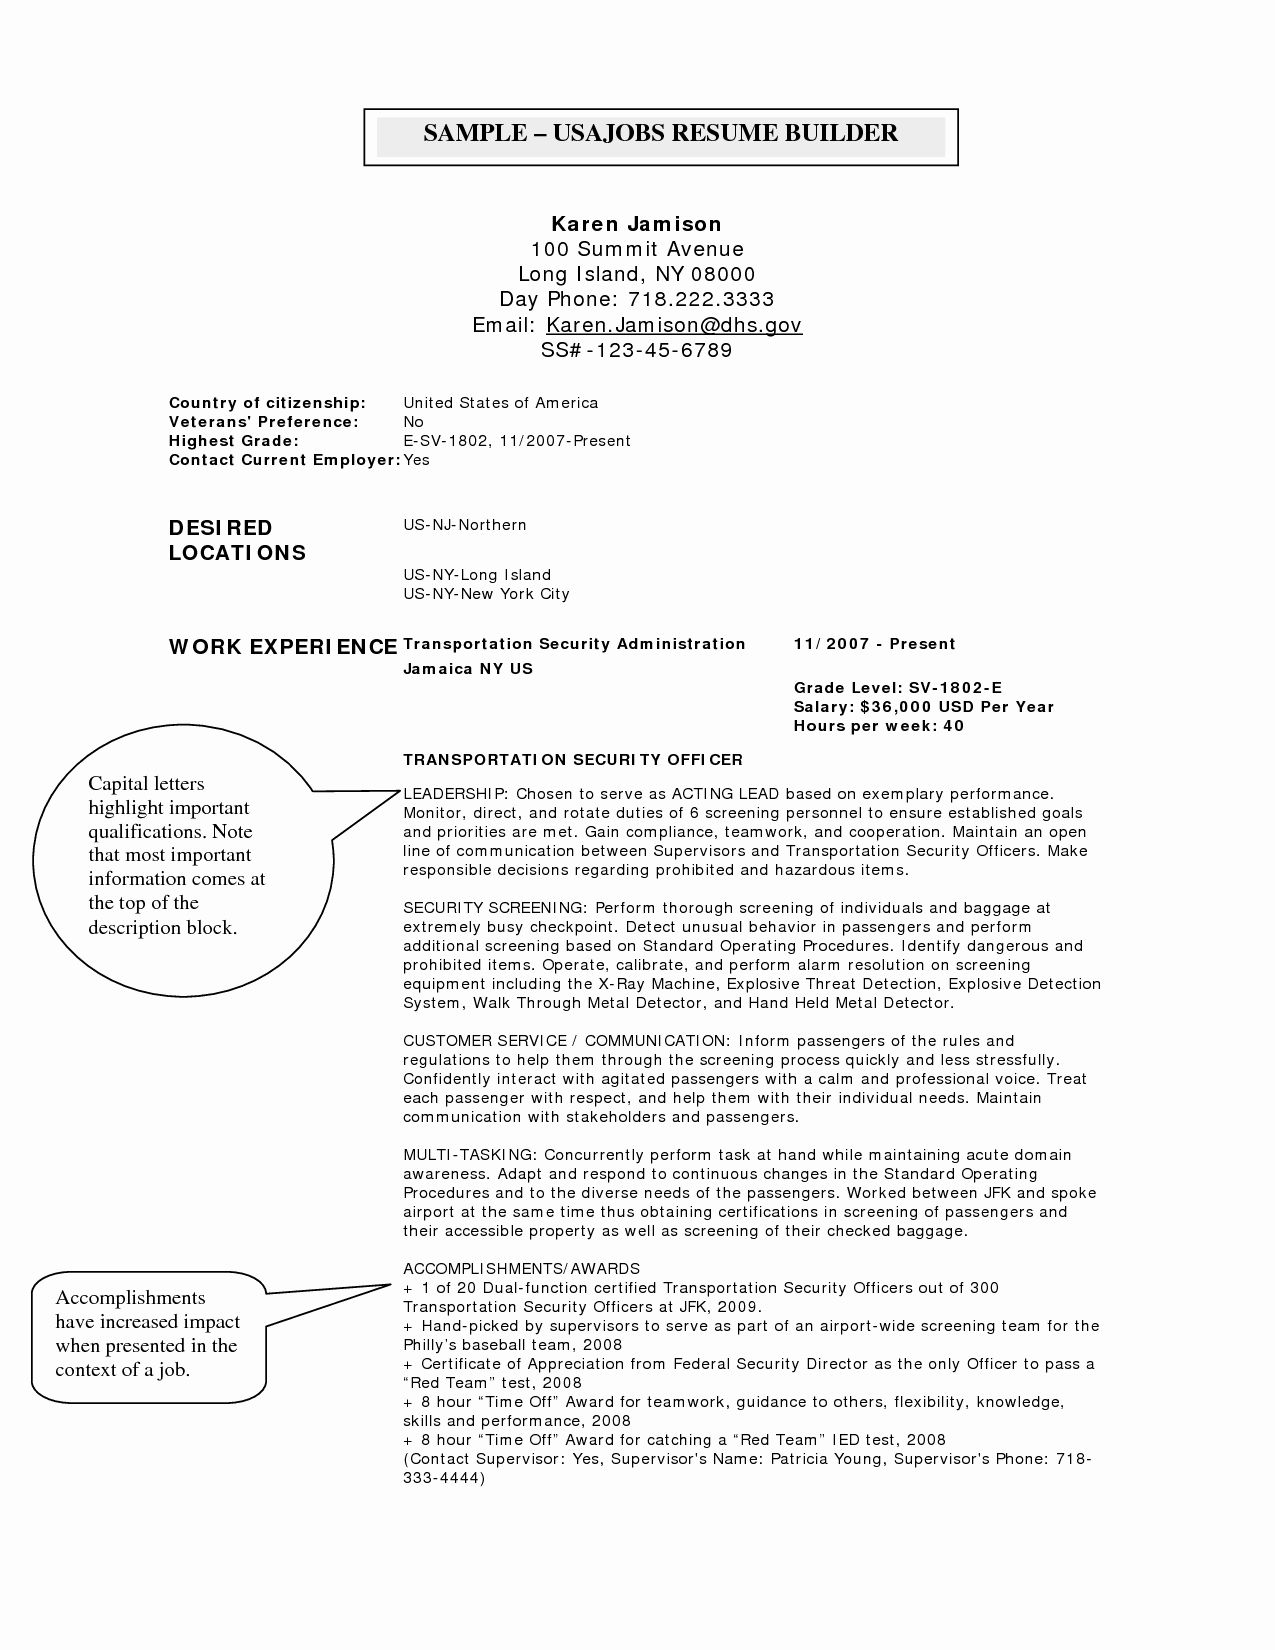 Resume Templates Usa Jobs Resume Templates Job Resume Samples Job Resume Template Federal Resume